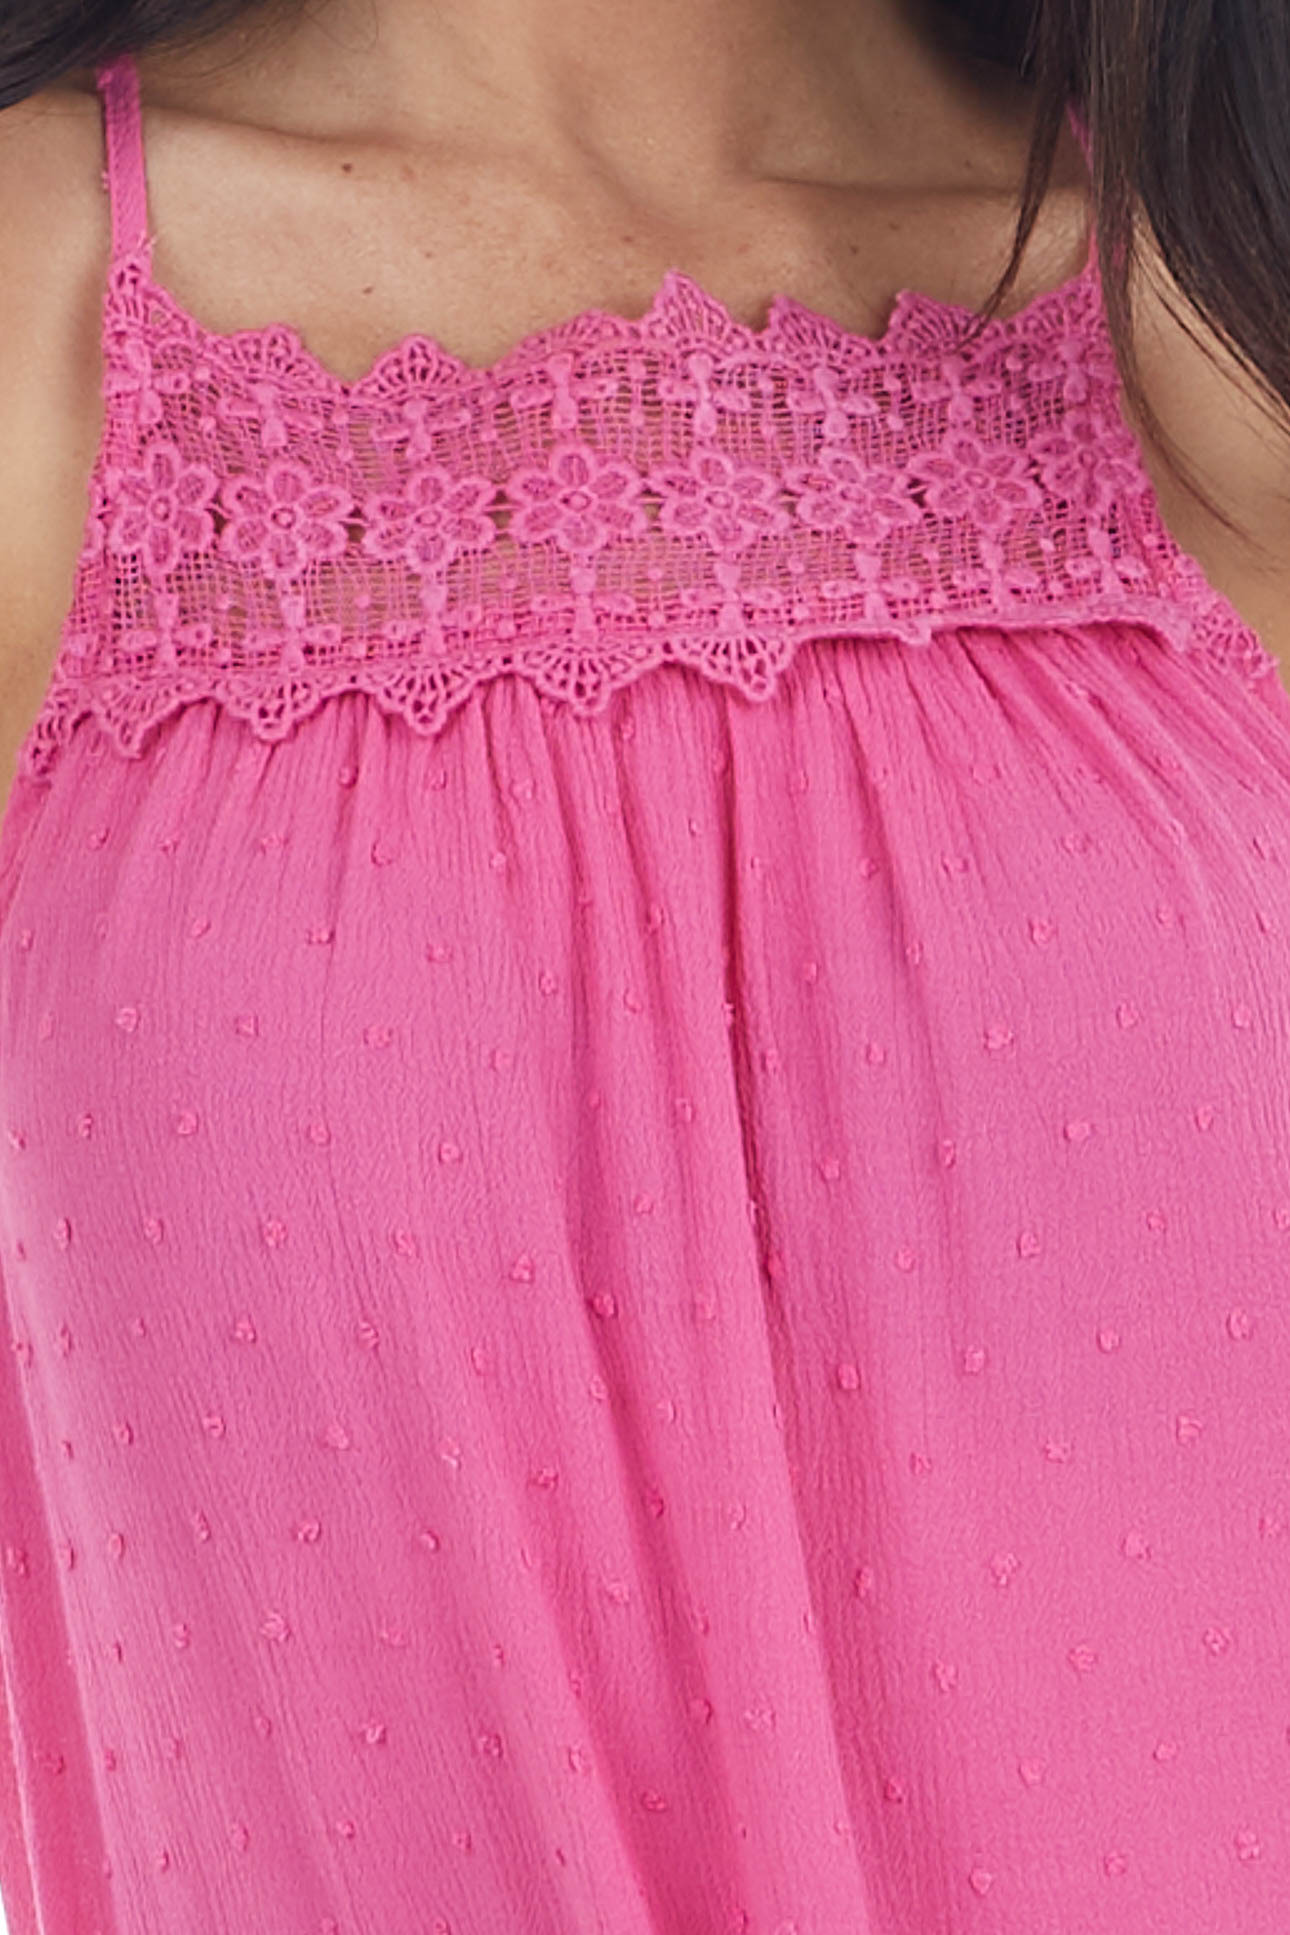 Hot Pink Swiss Dot Tank Top with Floral Crocheted Lace Neck